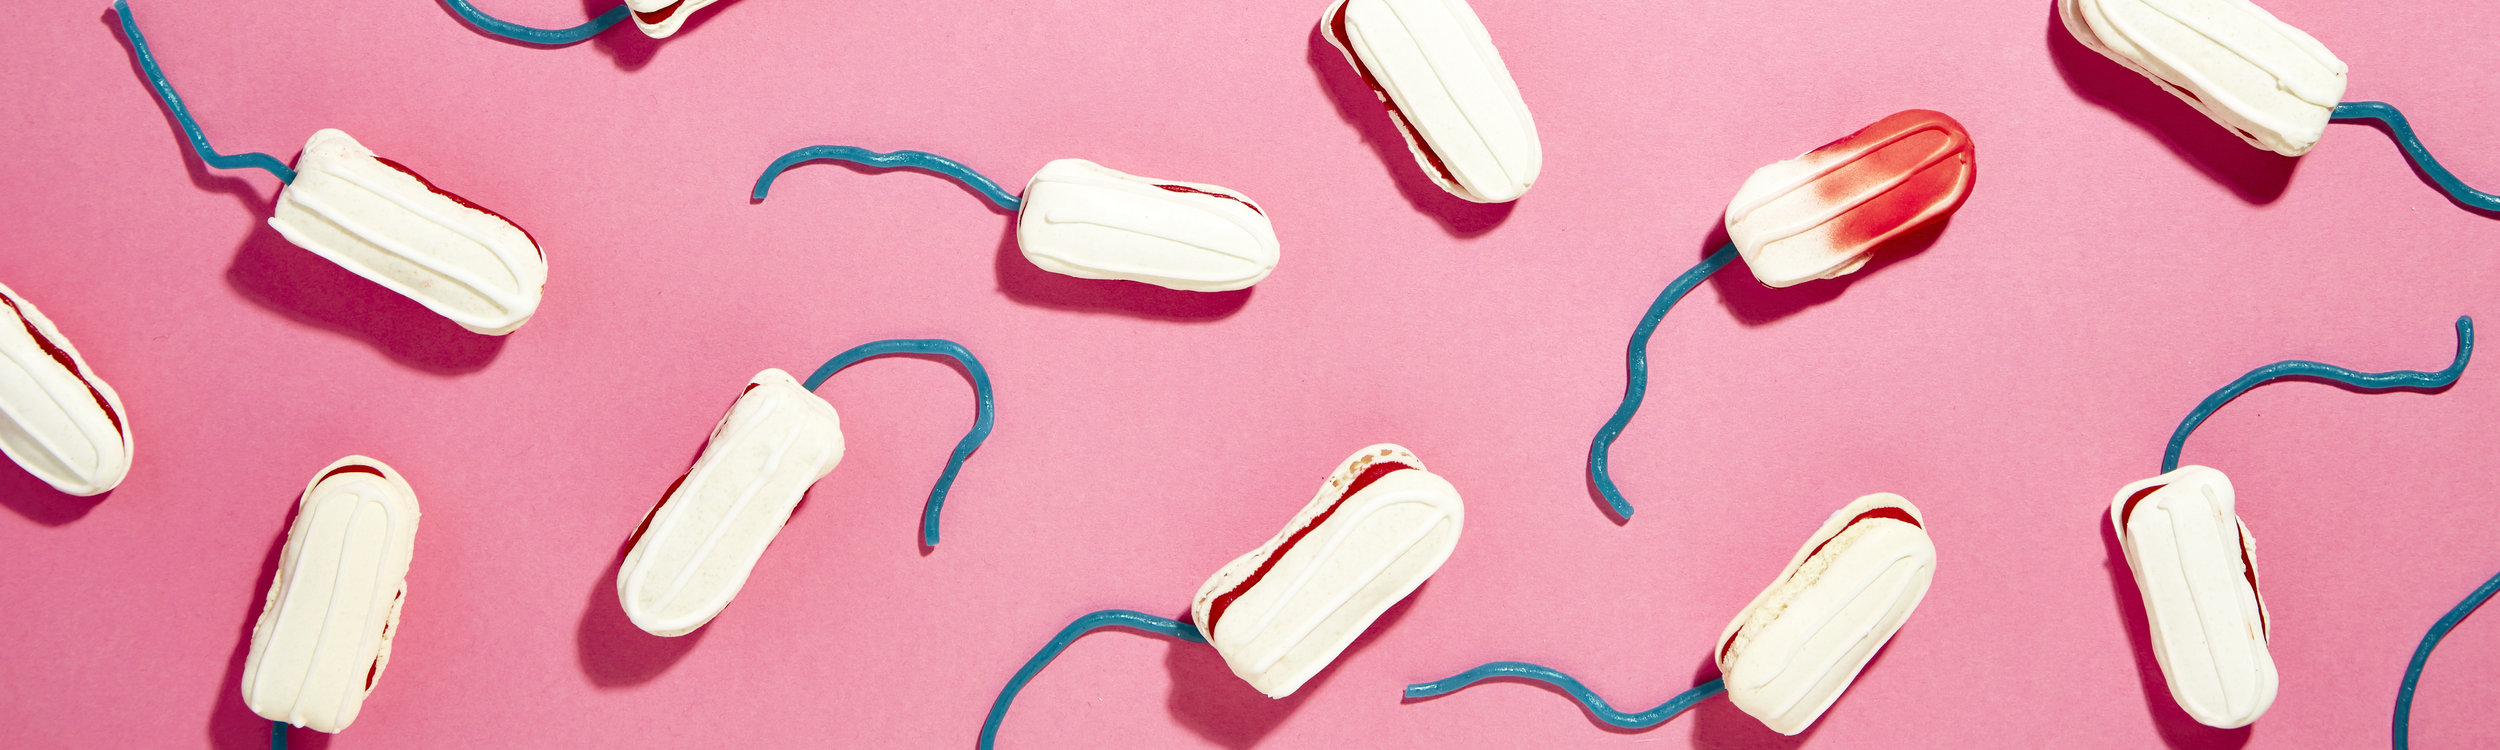 Ohlala makes the world's first bespoke Bloody Good Period tampon macarons